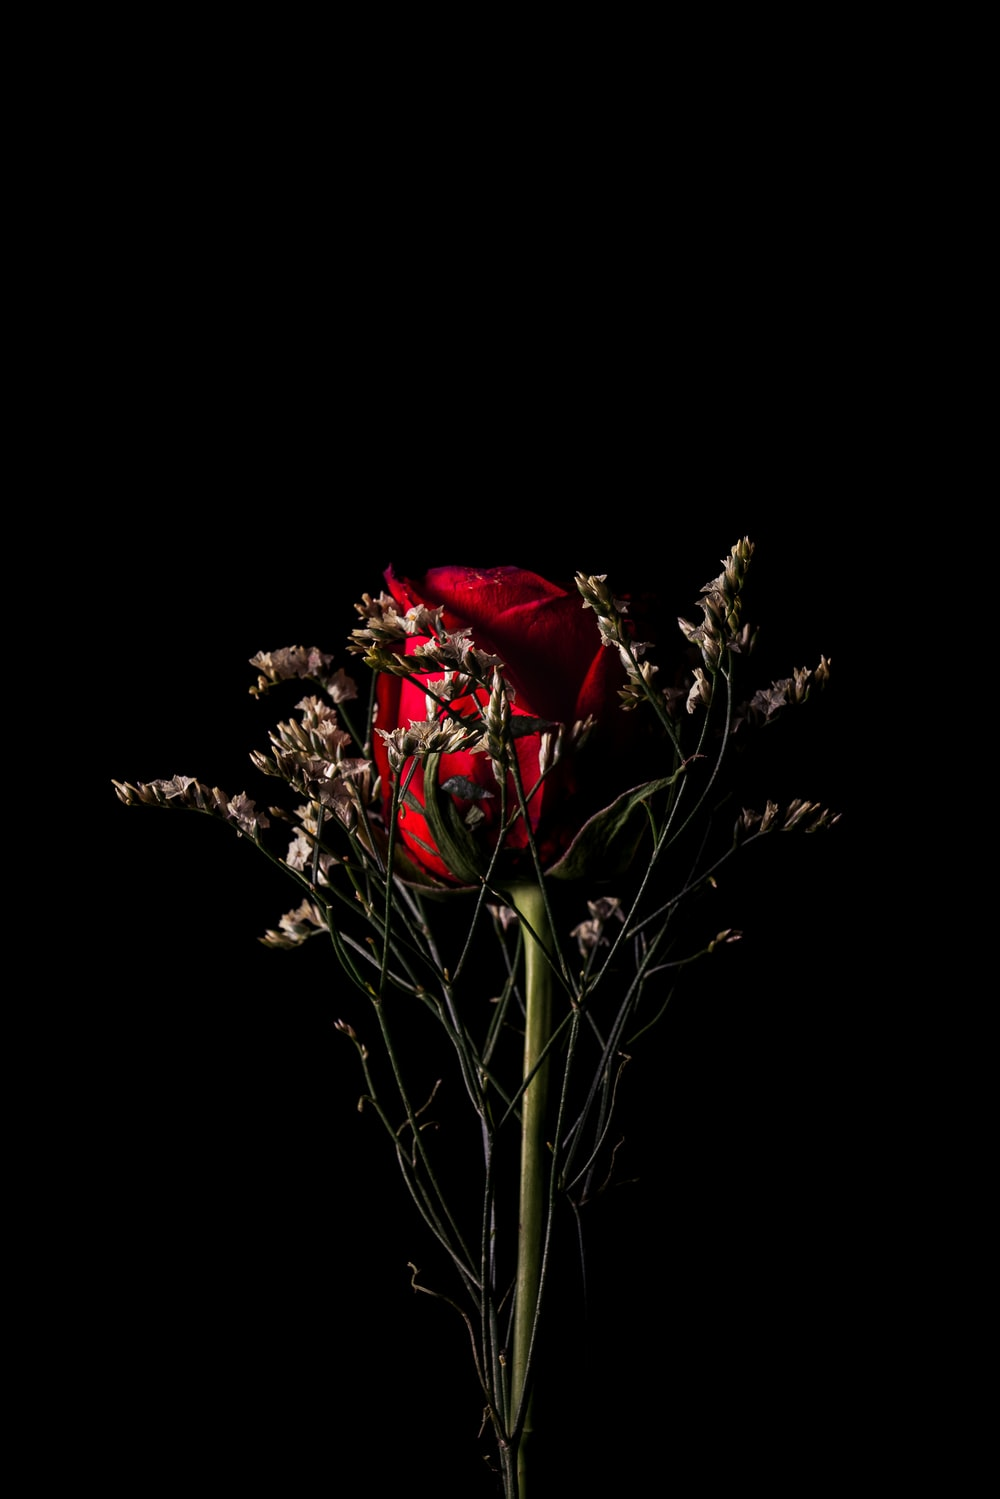 Red Rose Behind White Flowers In Black Background Photo Free Plant Image On Unsplash